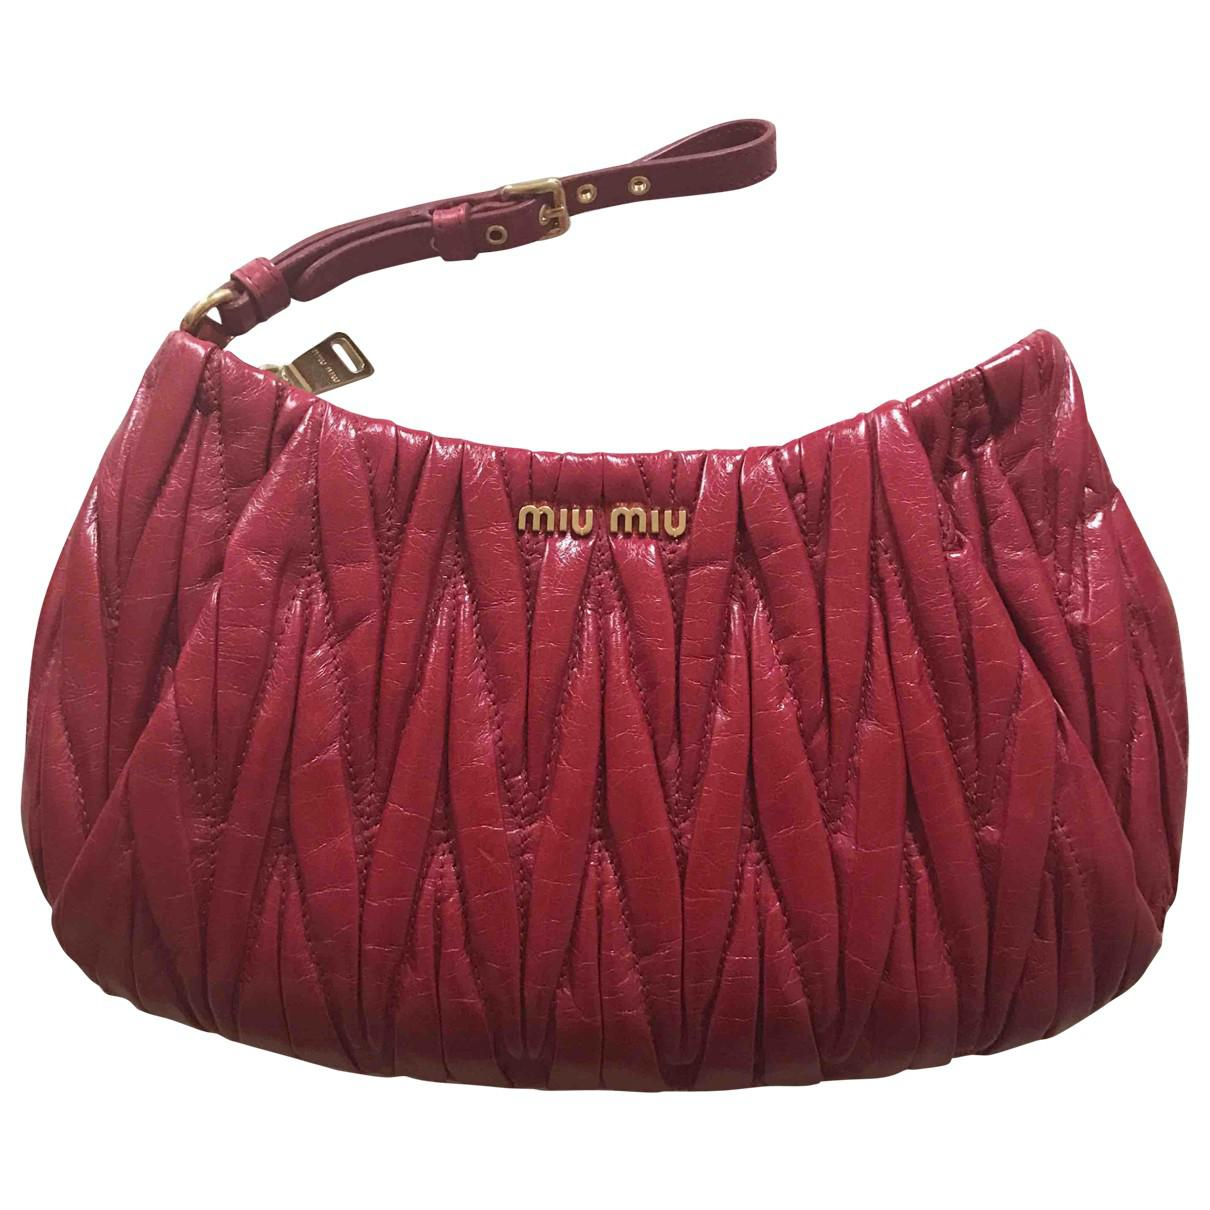 Pre-owned - Matelassé leather clutch bag Miu Miu kXAucdDcN